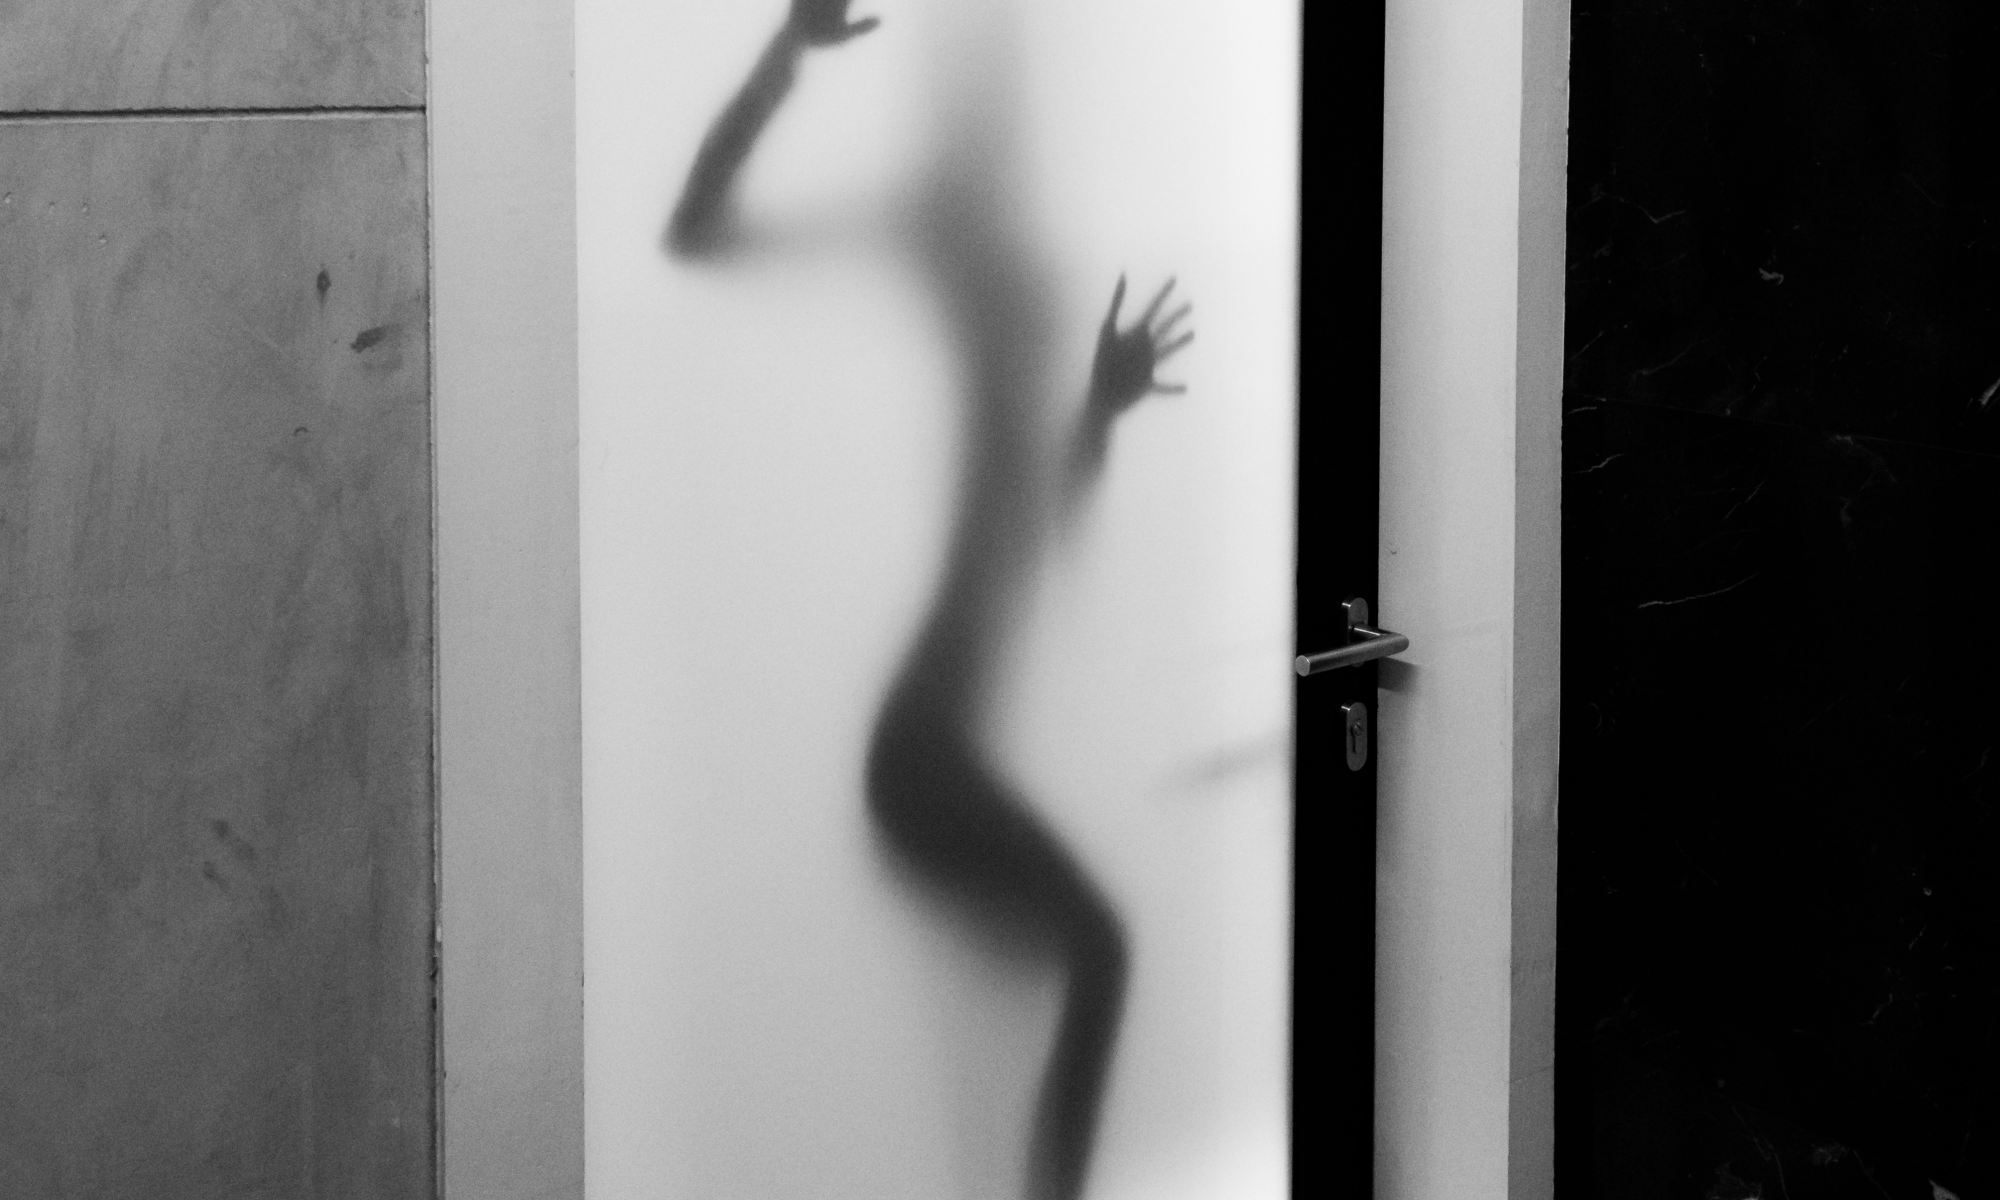 Shadow of person with body dysmorphic disorder against white panel glass door